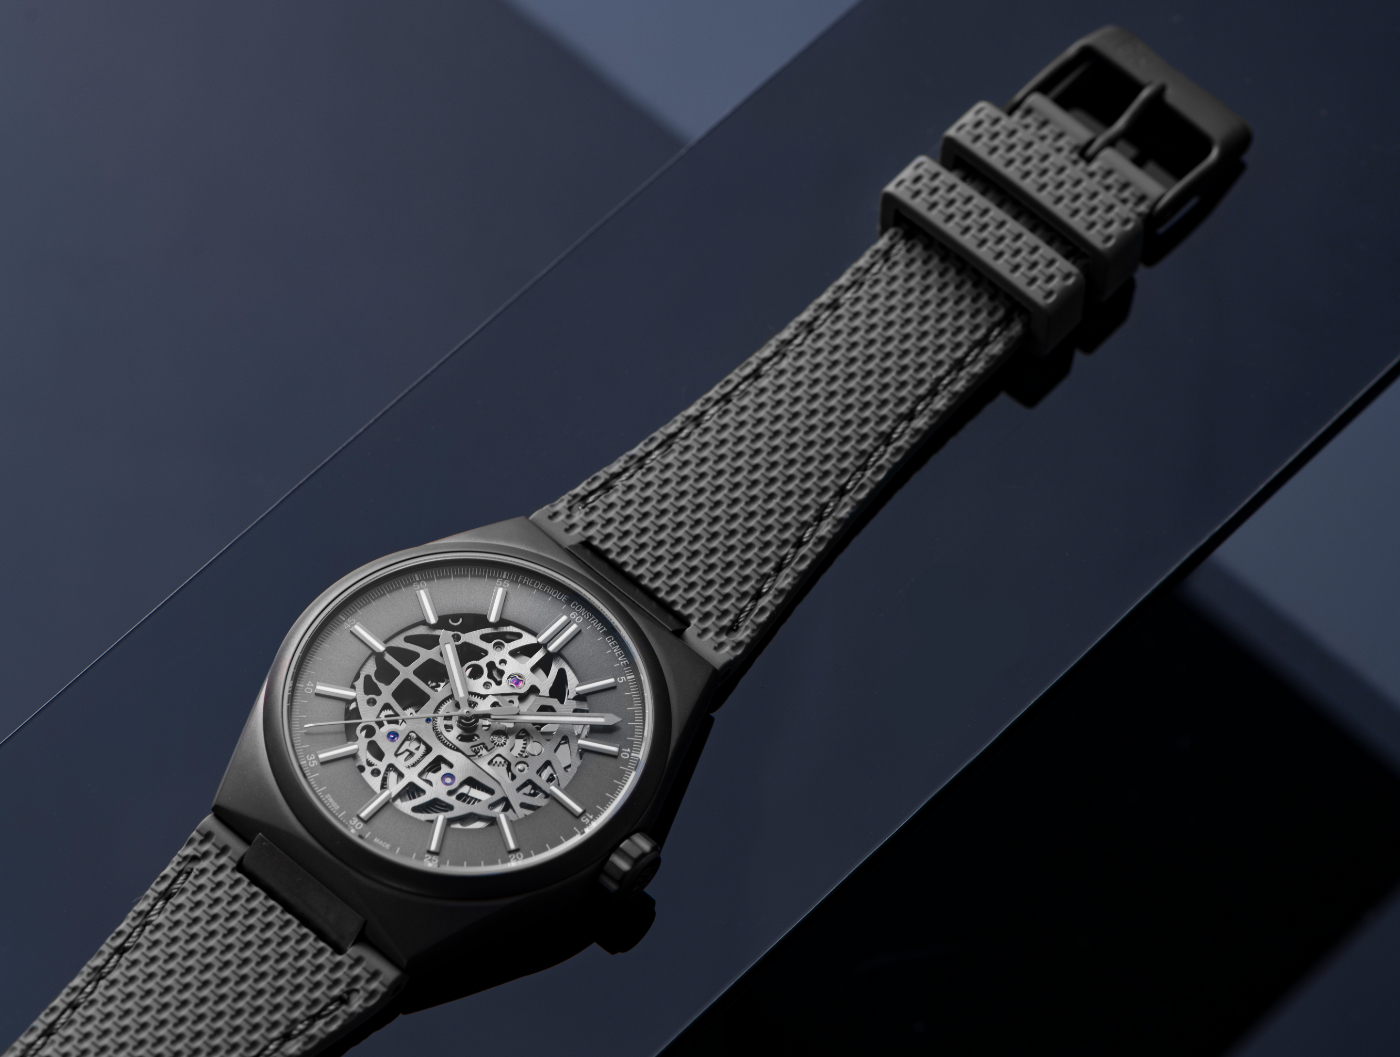 Presenting the Frederique Constant Highlife Automatic Skeleton